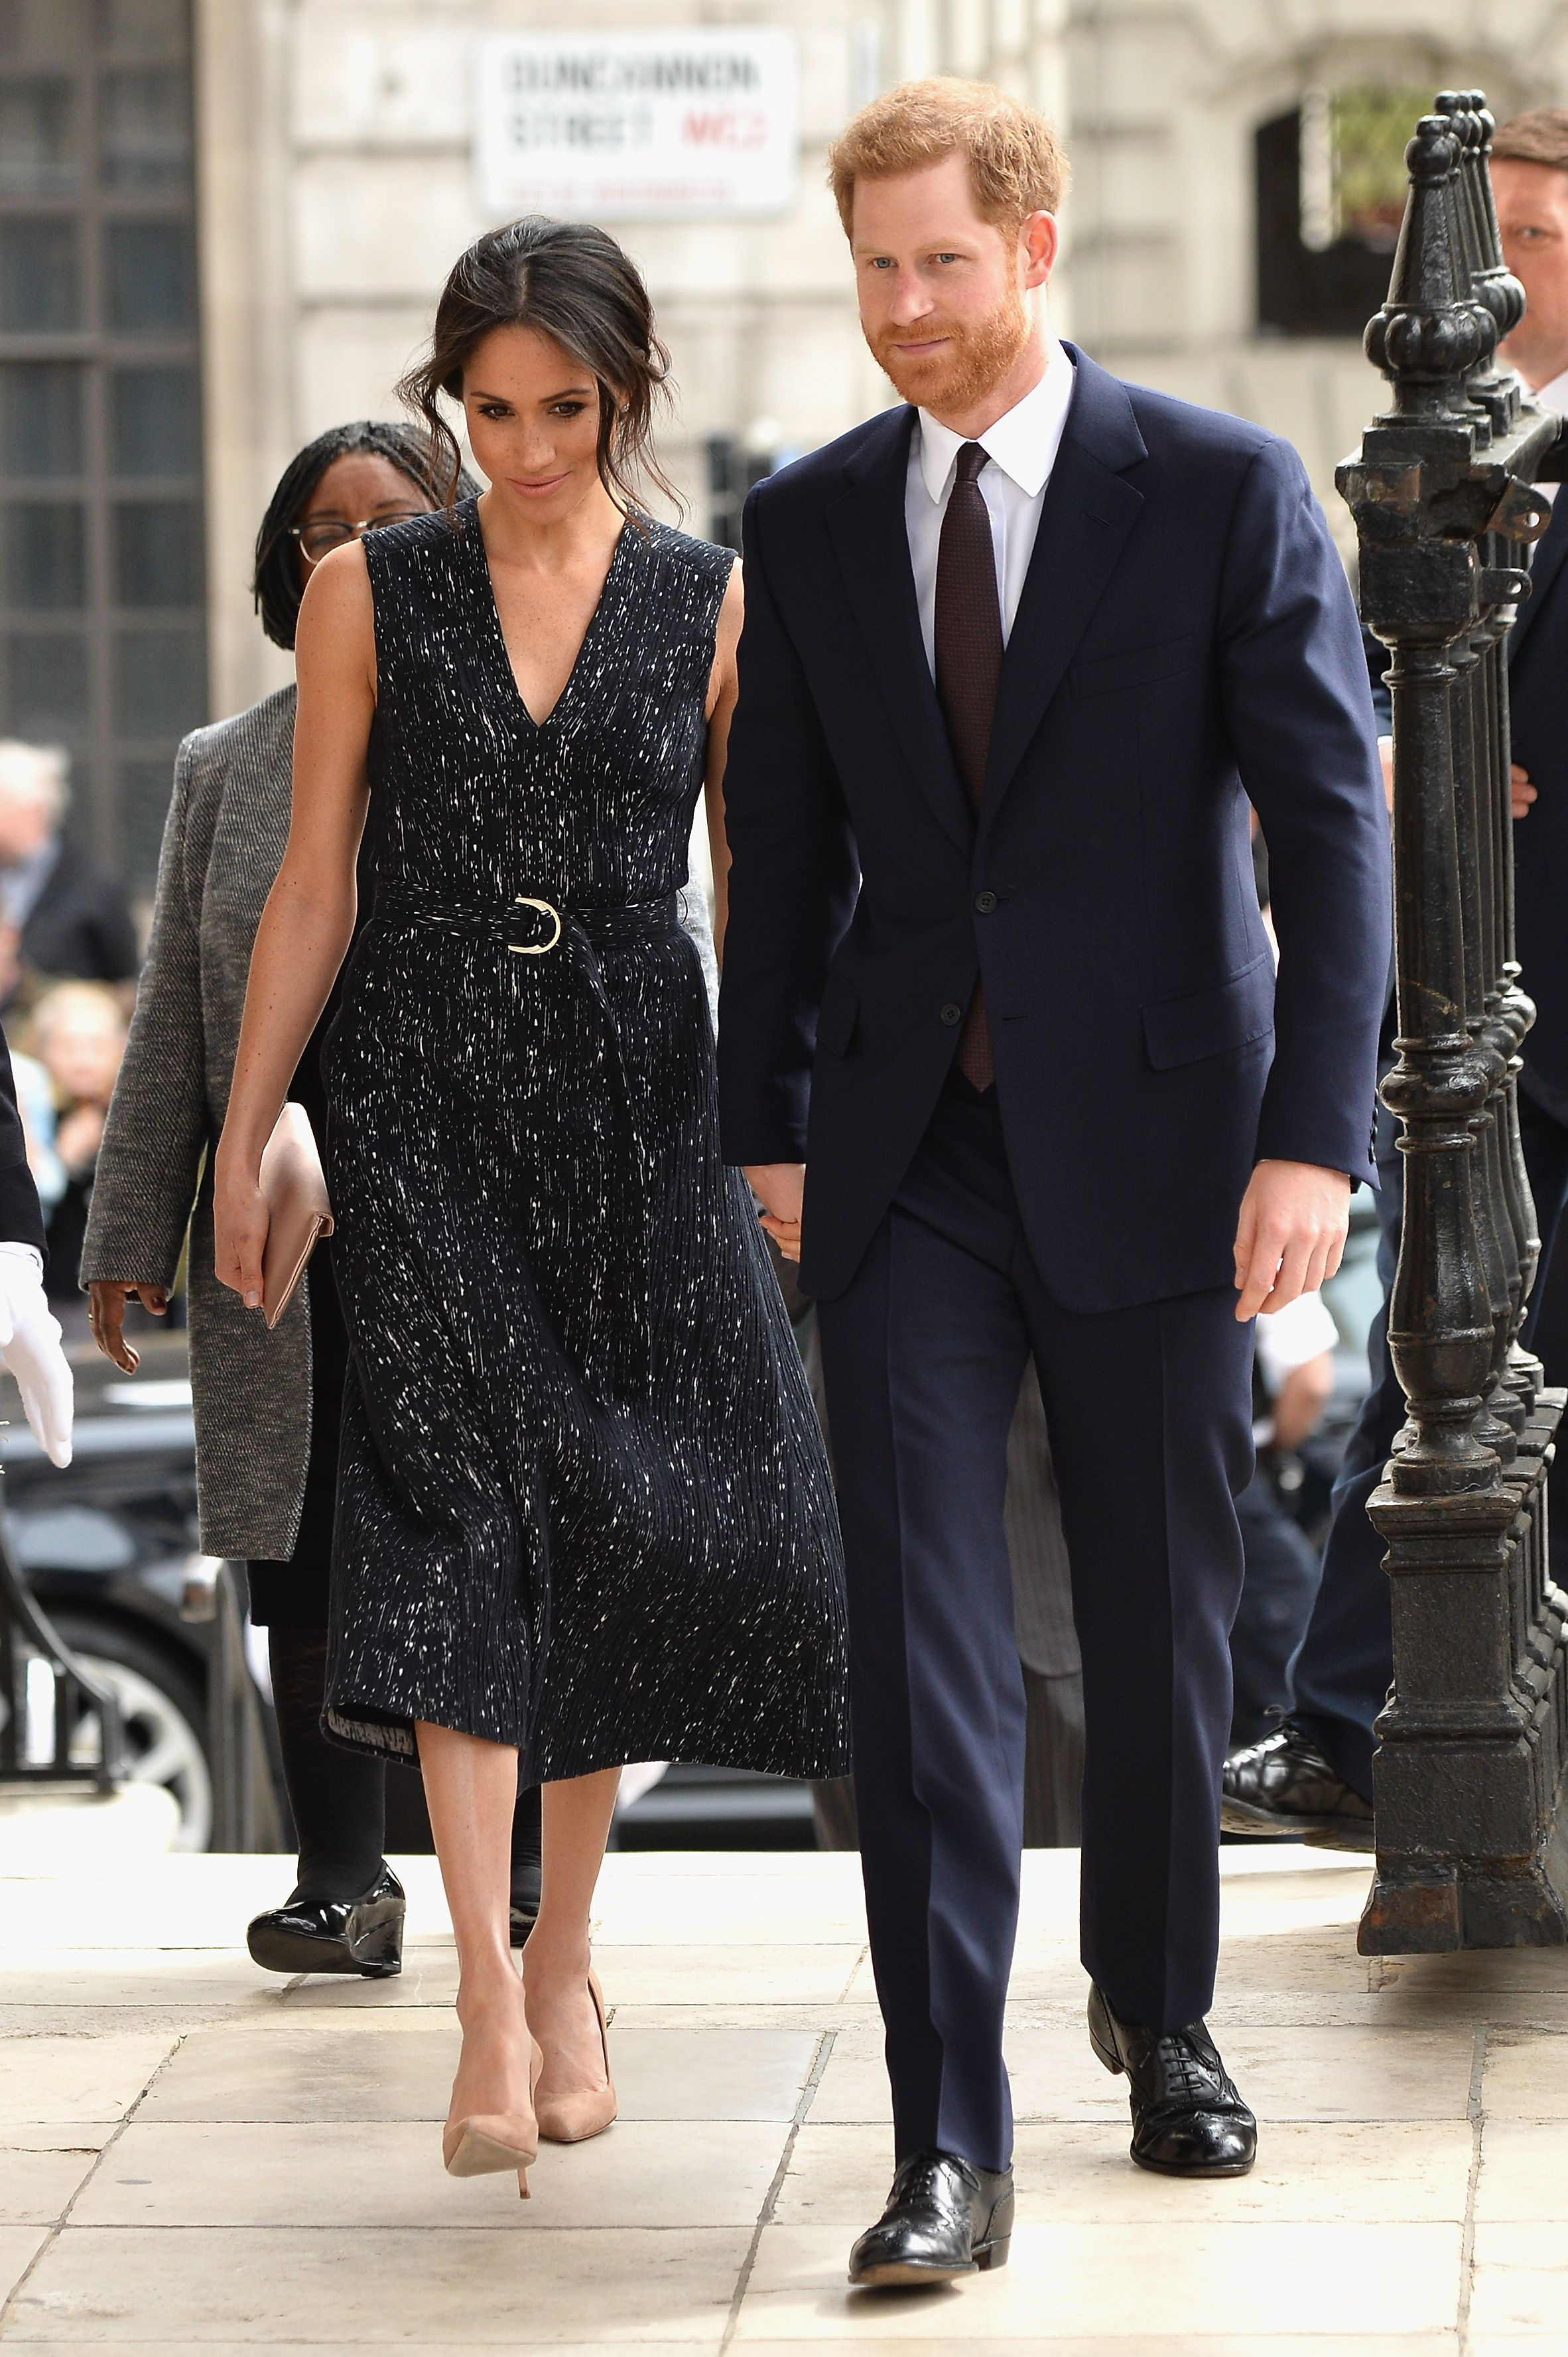 Shop Meghan Markle S Style How To Wear Meghan Markle S Outfits